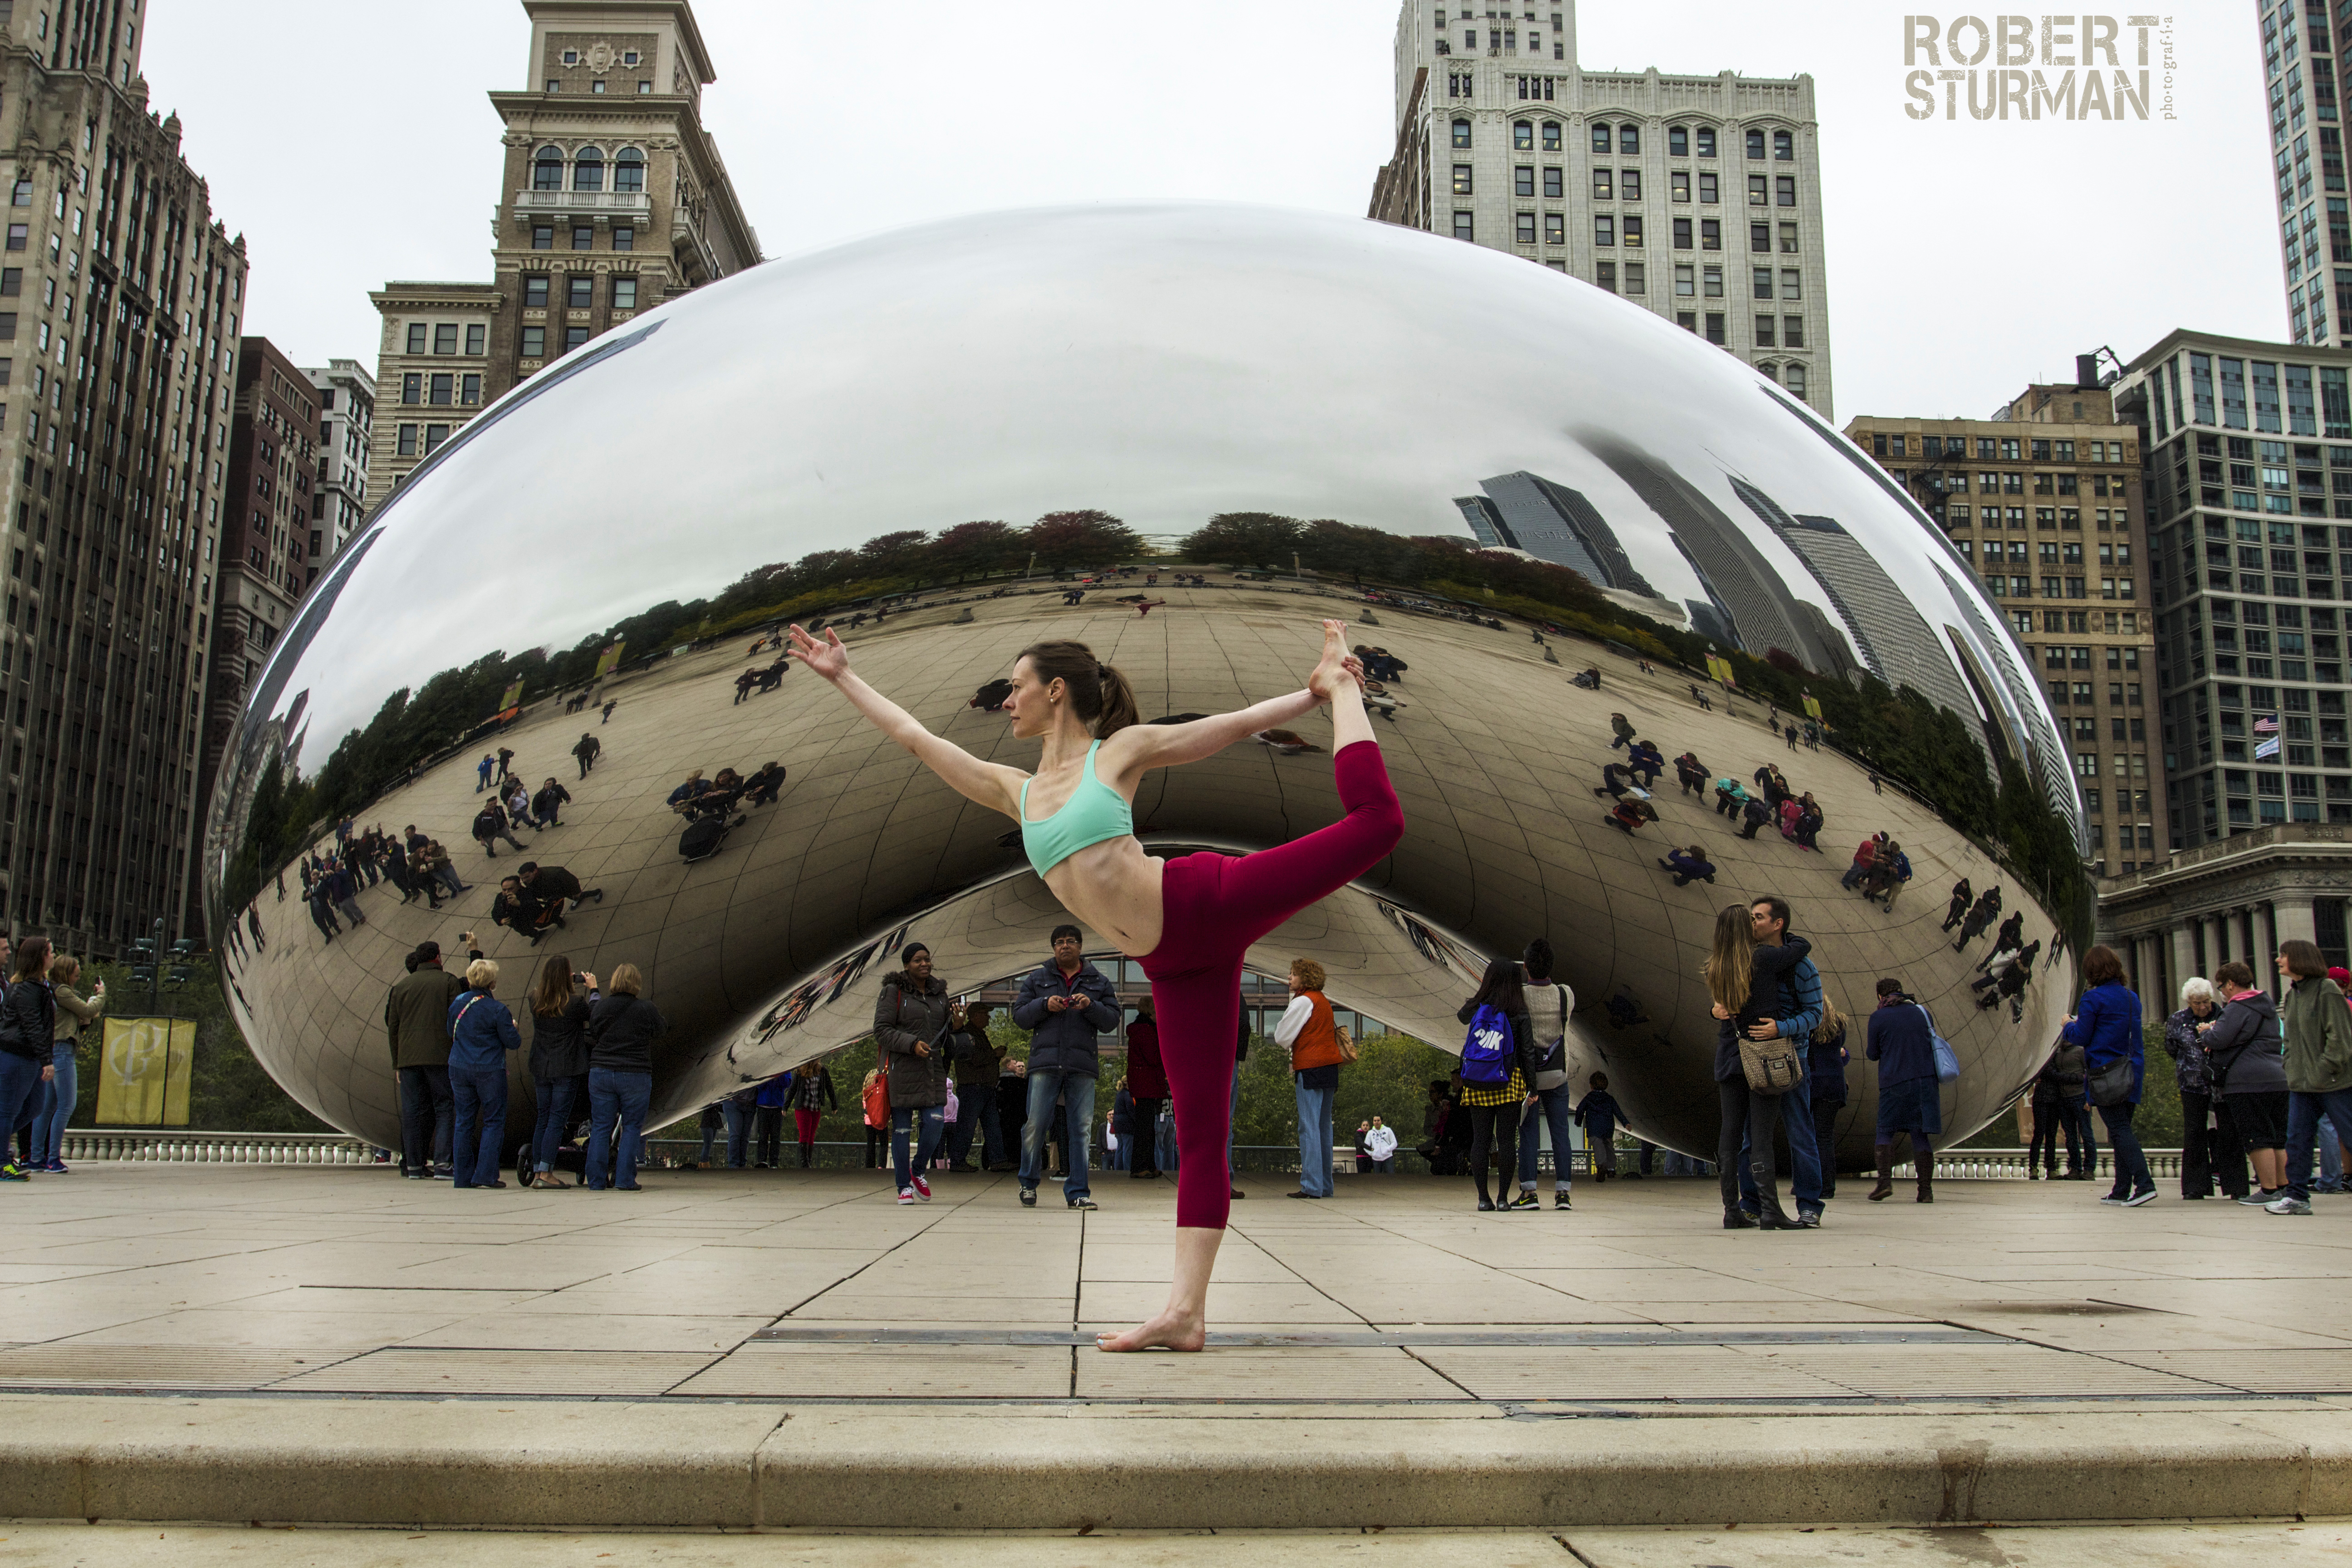 Cloudgate dancer, Chicago.